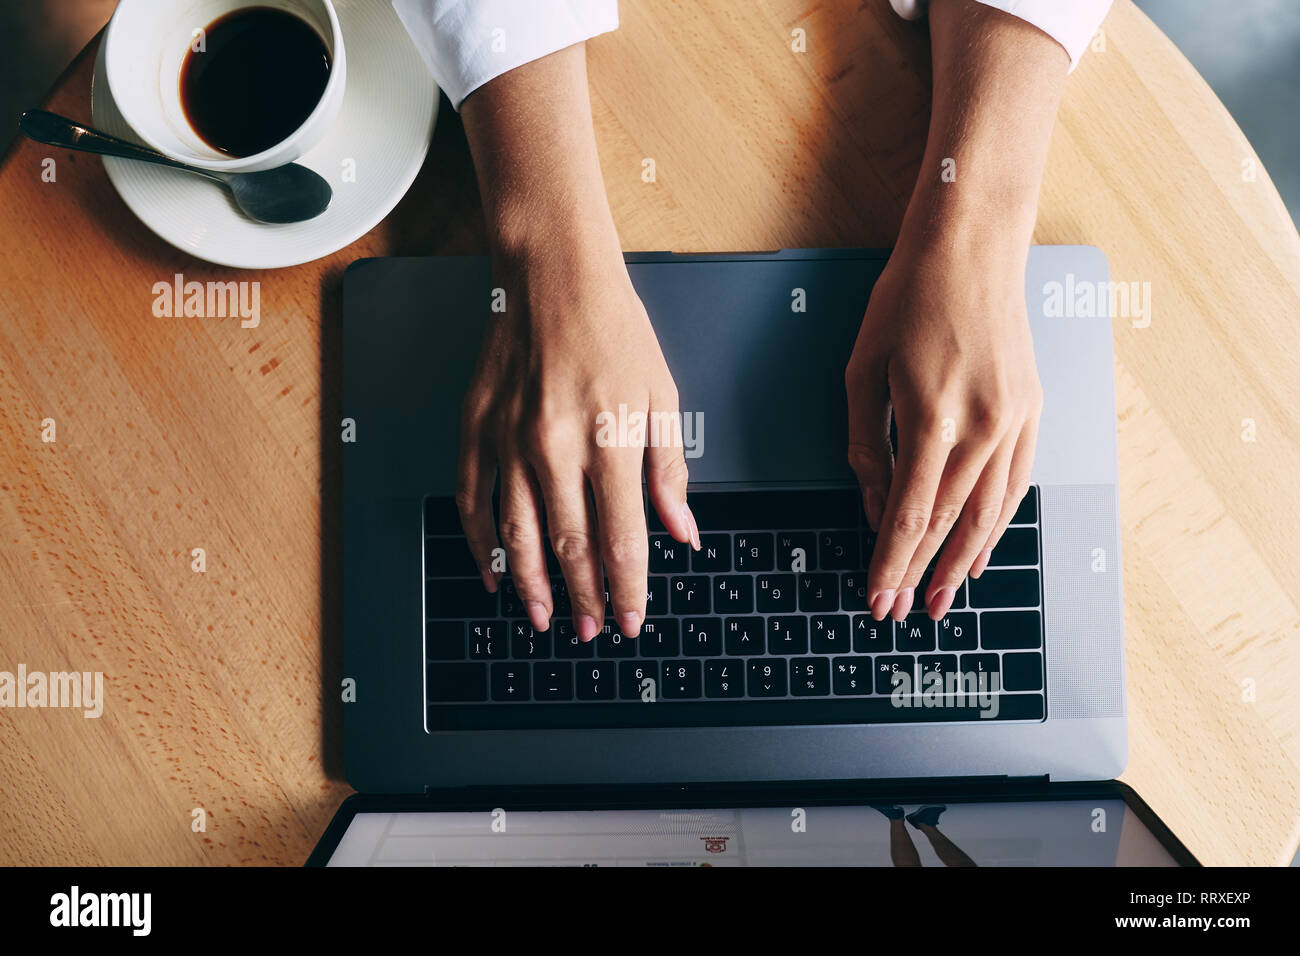 Gray laptop and coffee on table. Online shopping concept, freelance work in progress, close up portrait, working with laptop. - Stock Image